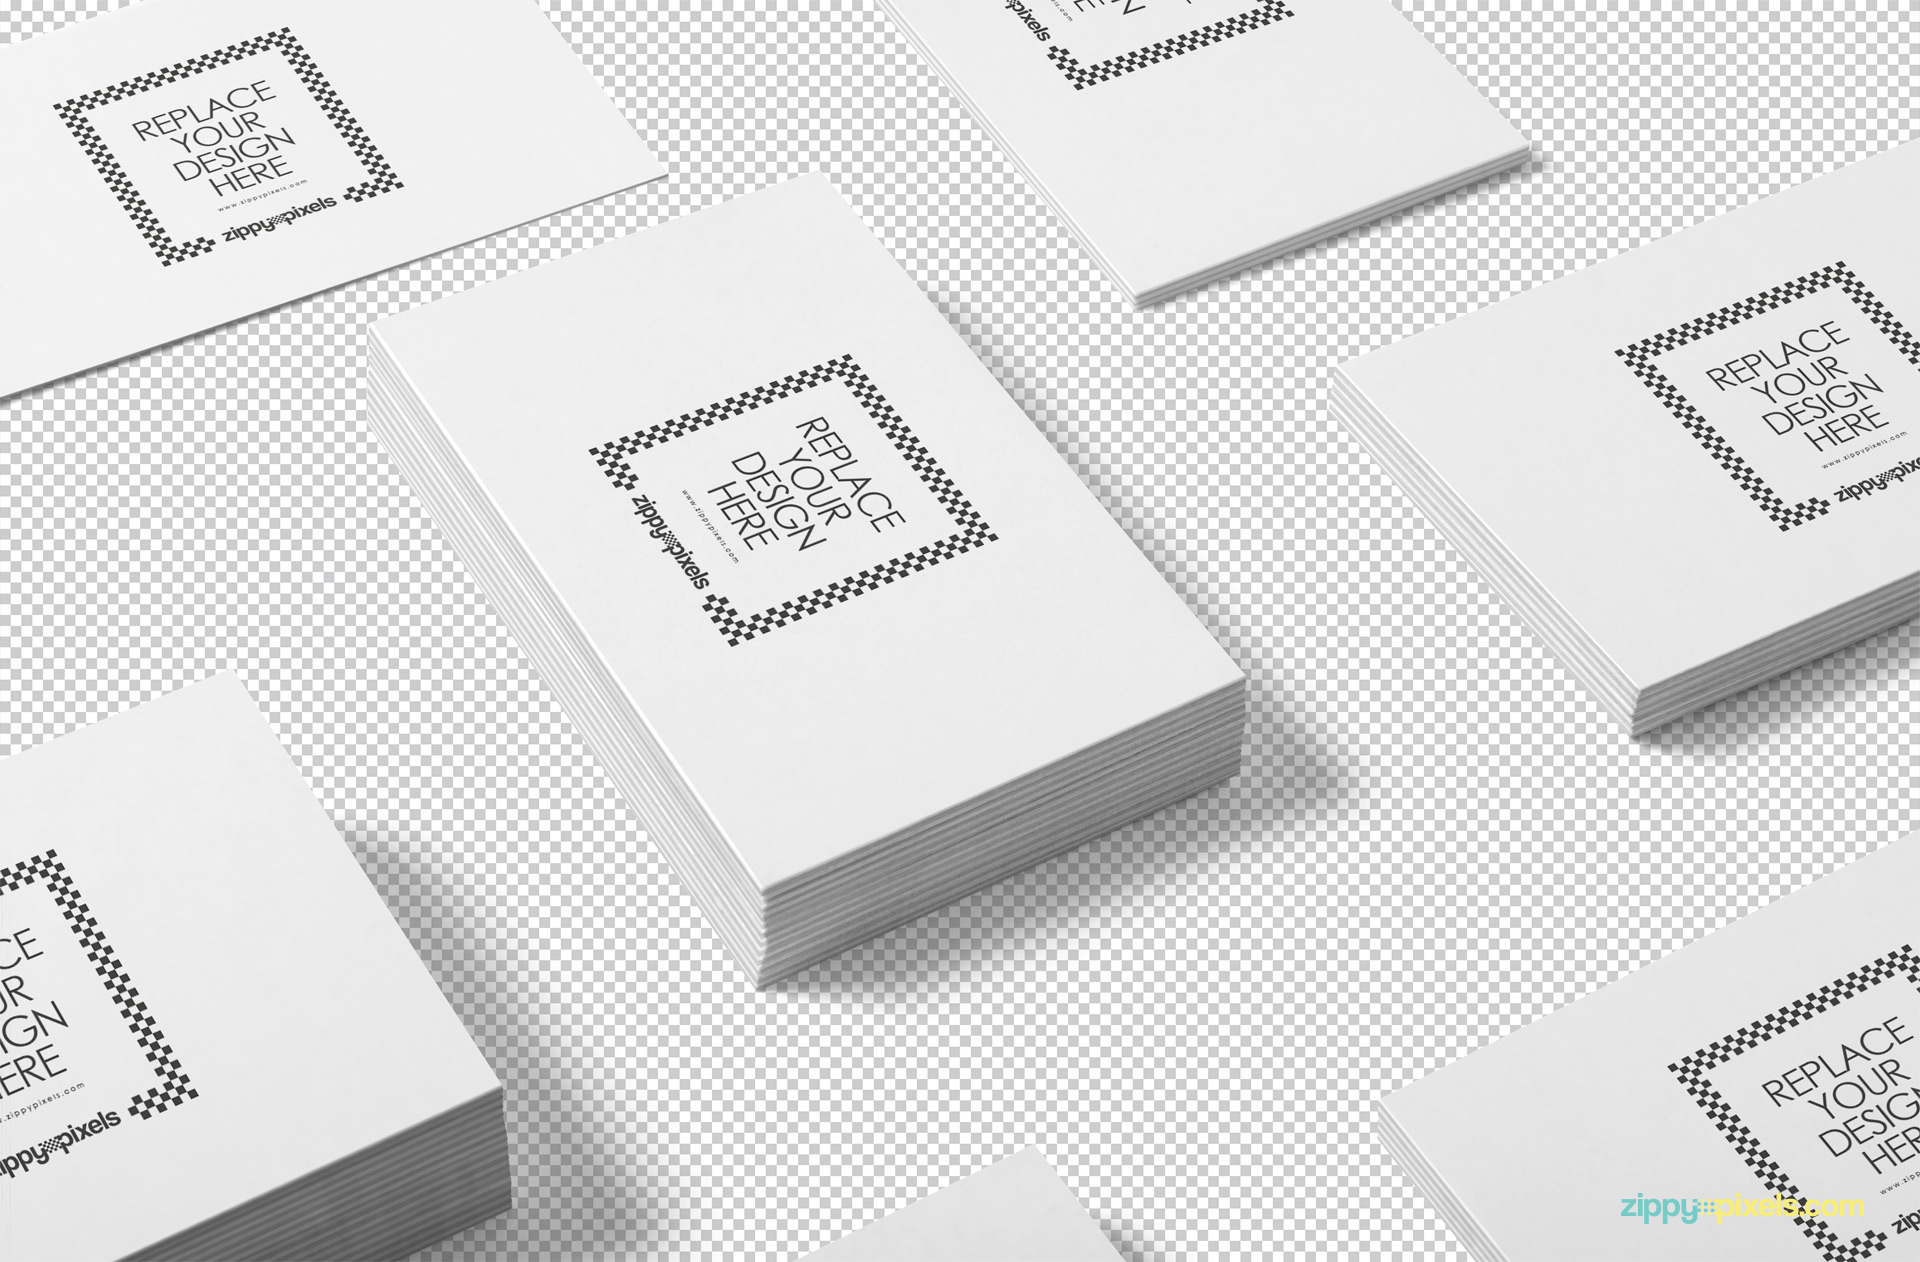 Use Photoshop to replace the design of the business card mockup.